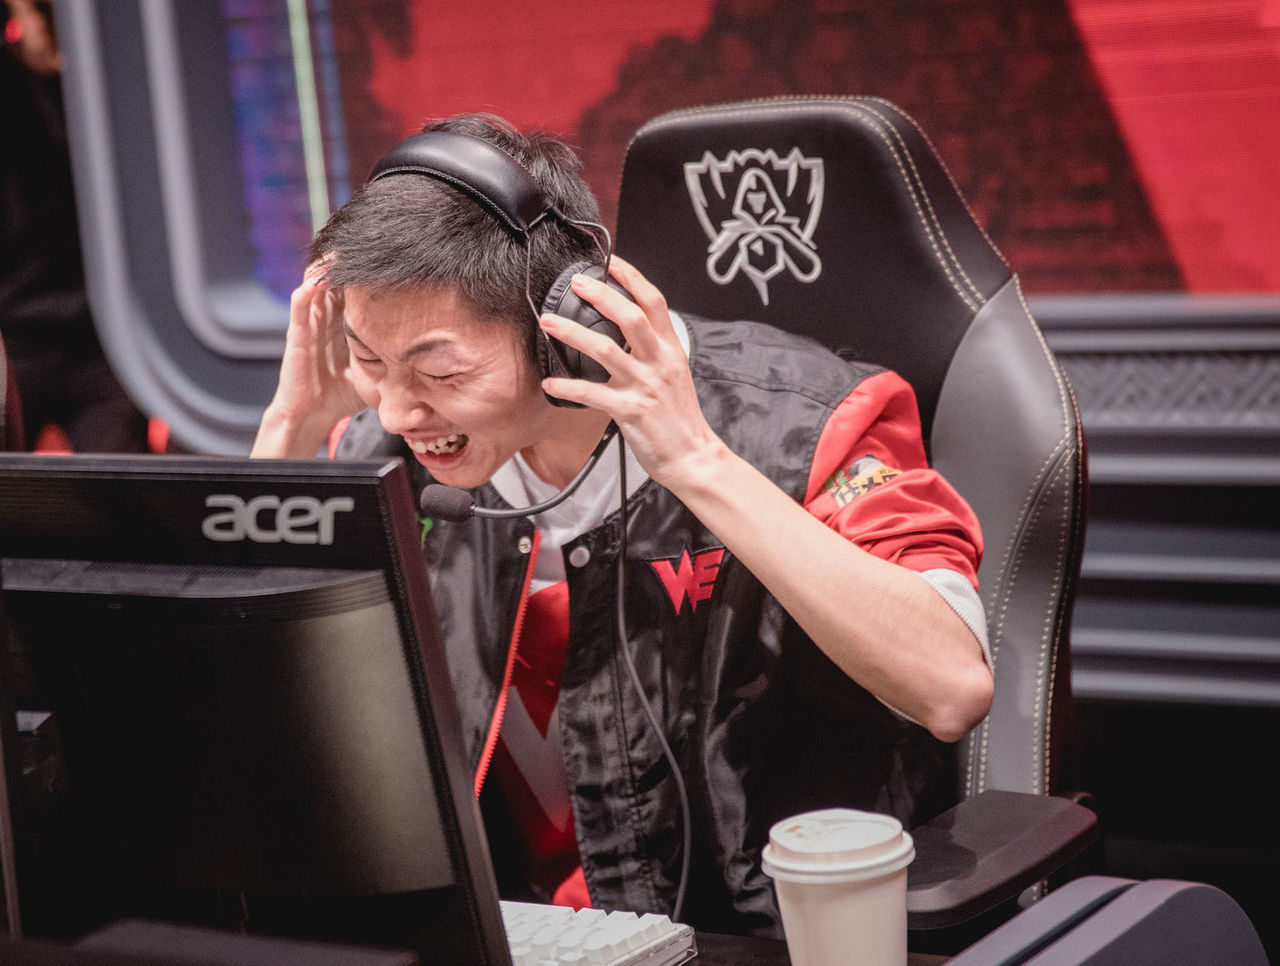 OG issues statement on Dota 2 racism controversy, LGD Gaming's Condi receives 18-month ban, while NiP reportedly looks at roster change pre-Major